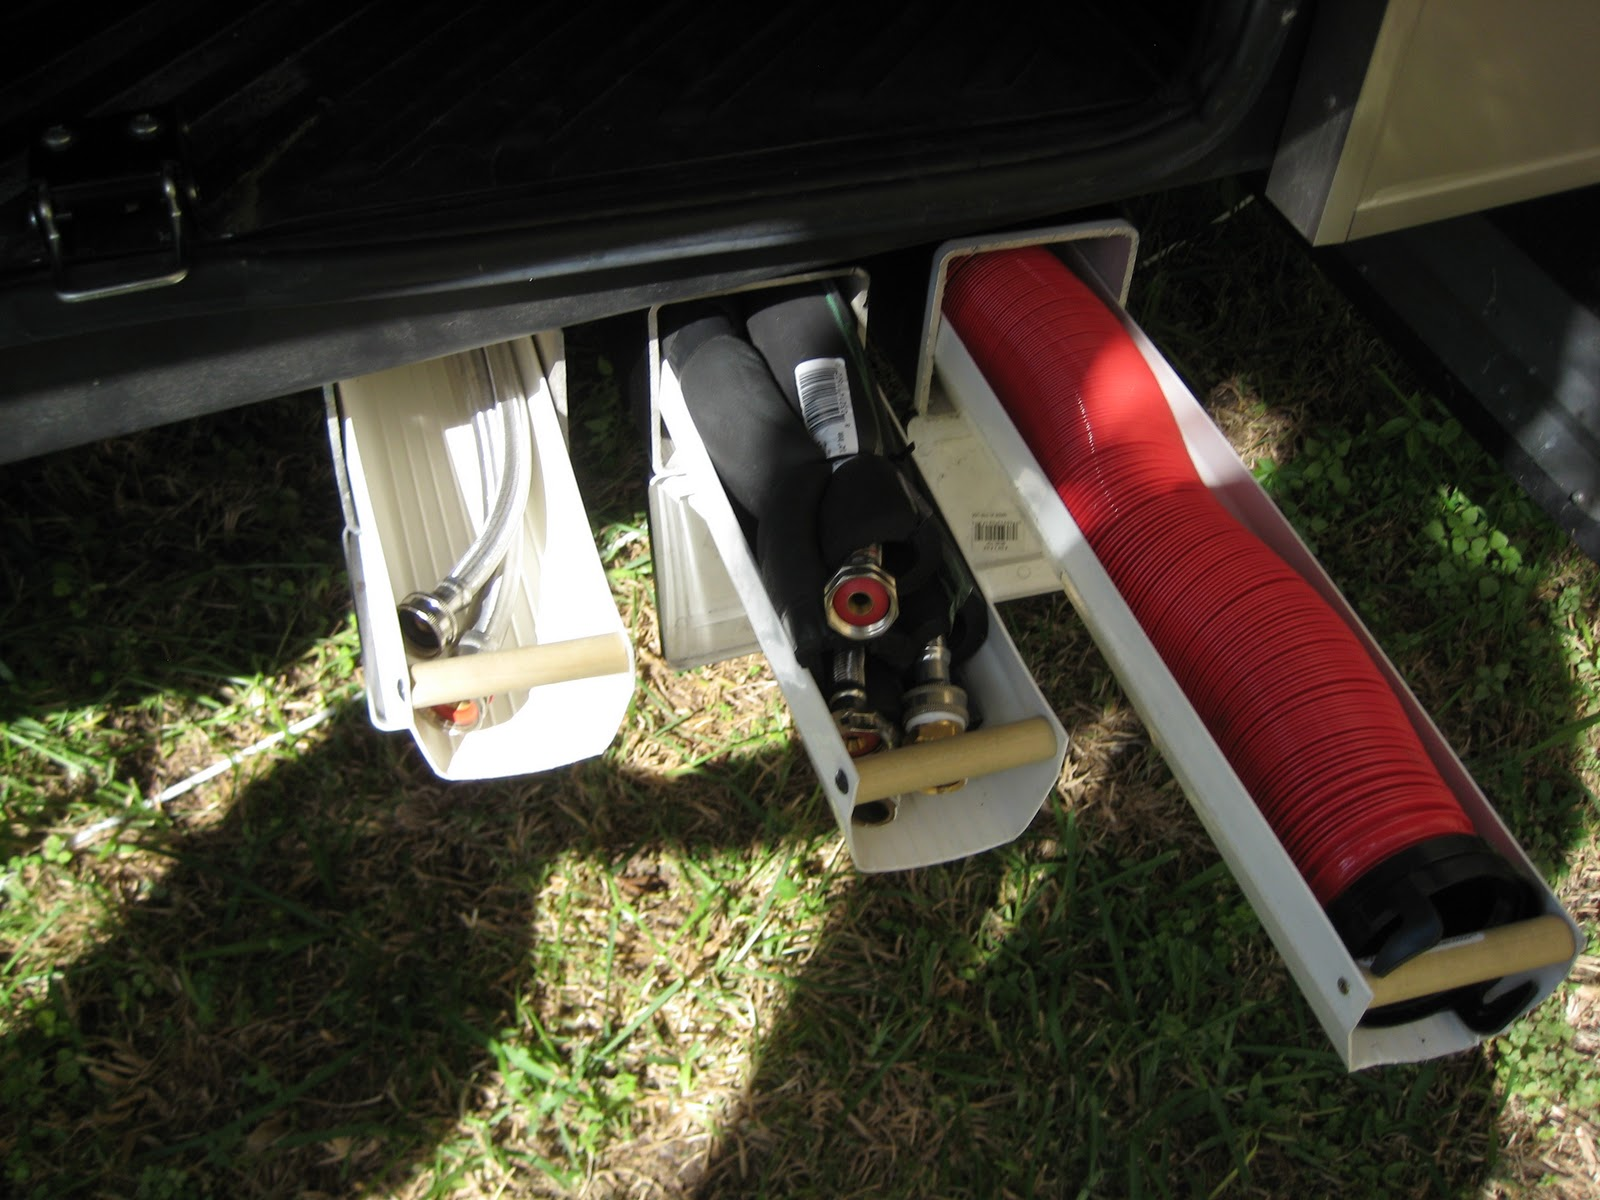 Rv mods sewer hose storage ideas and examples for Camper storage